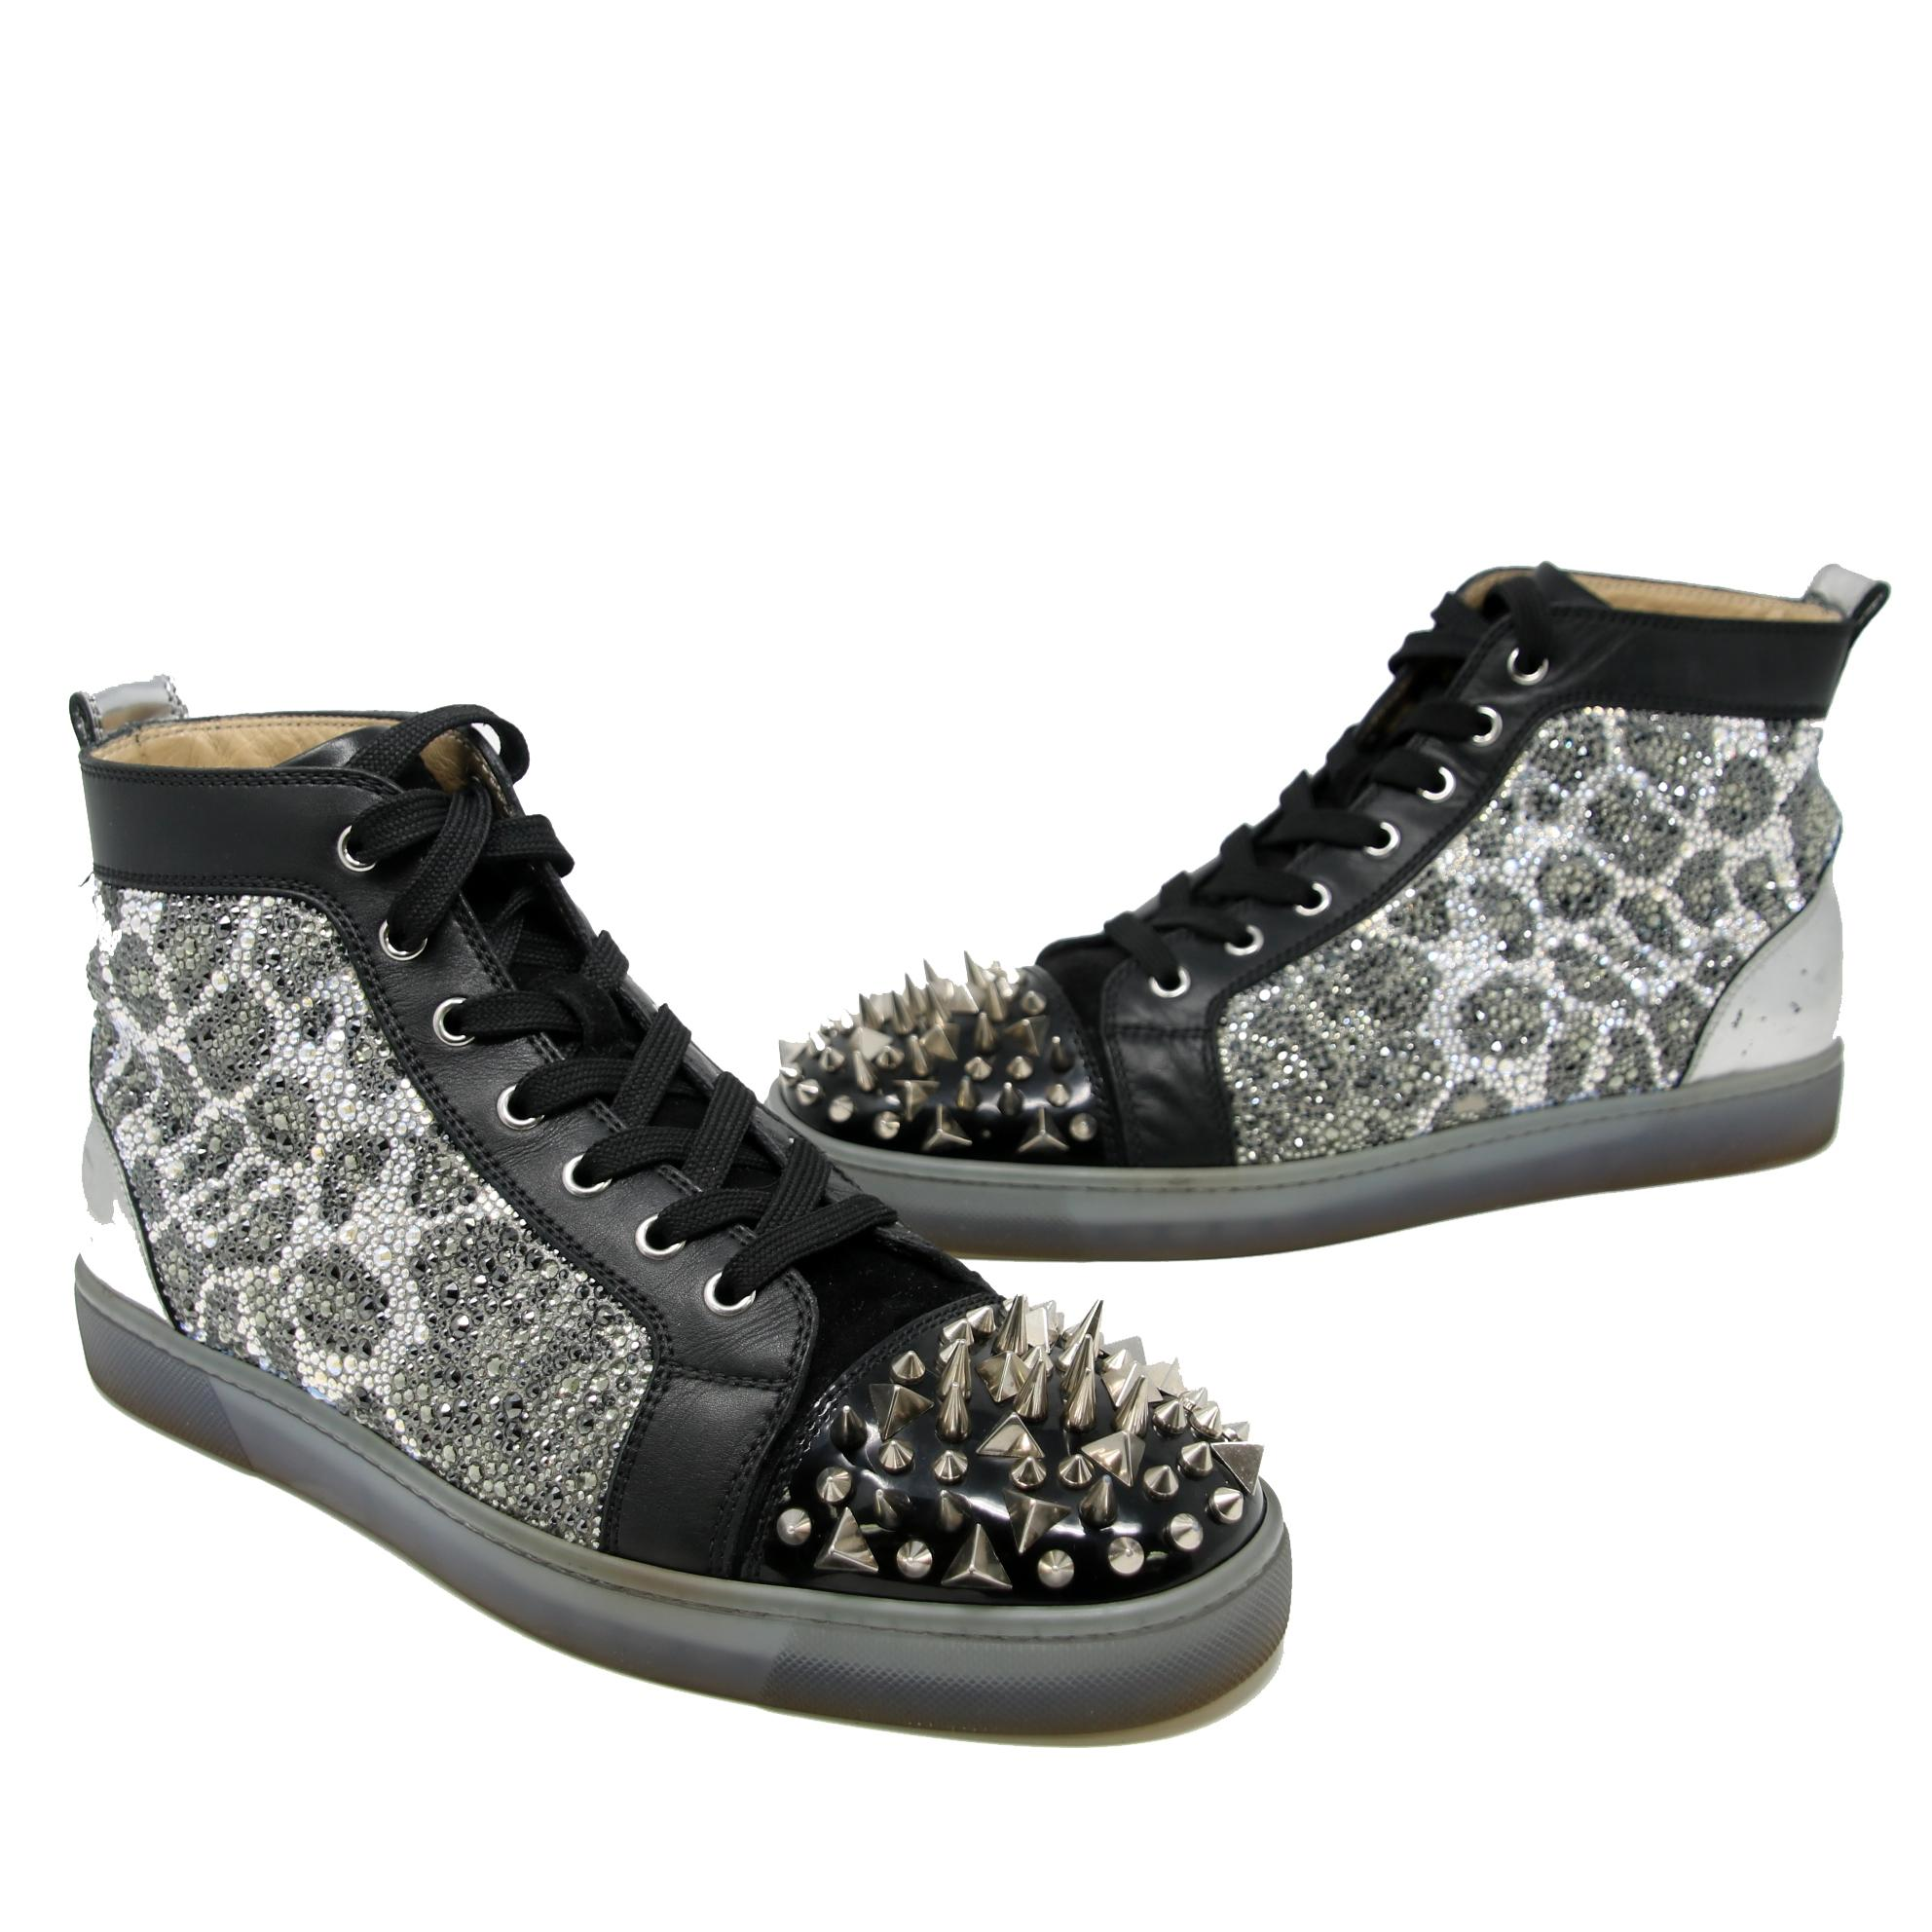 bebe1eb33f03 christian-louboutin-black -signature-strass-silver-spikes-no-limit-high-top-sneakers-425-sneakers-siz-22872128-0-0.jpg